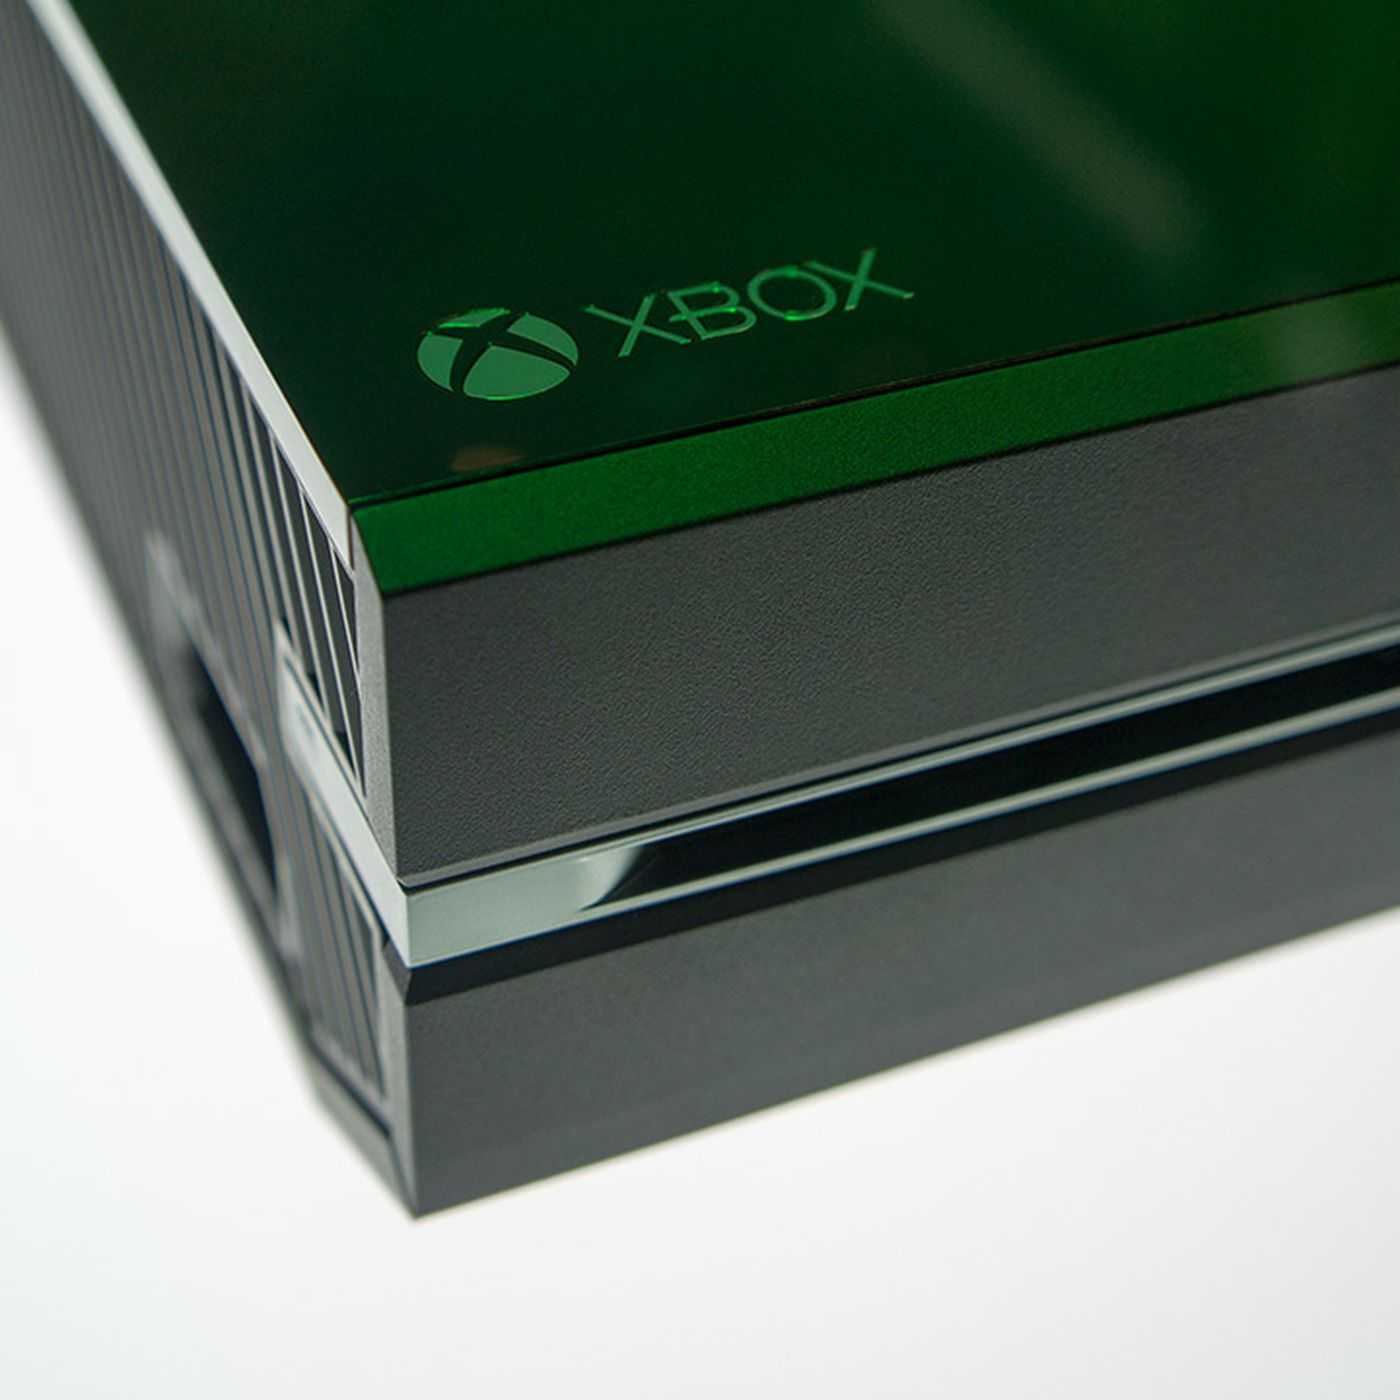 Xbox One lets you play during download, Microsoft confirms